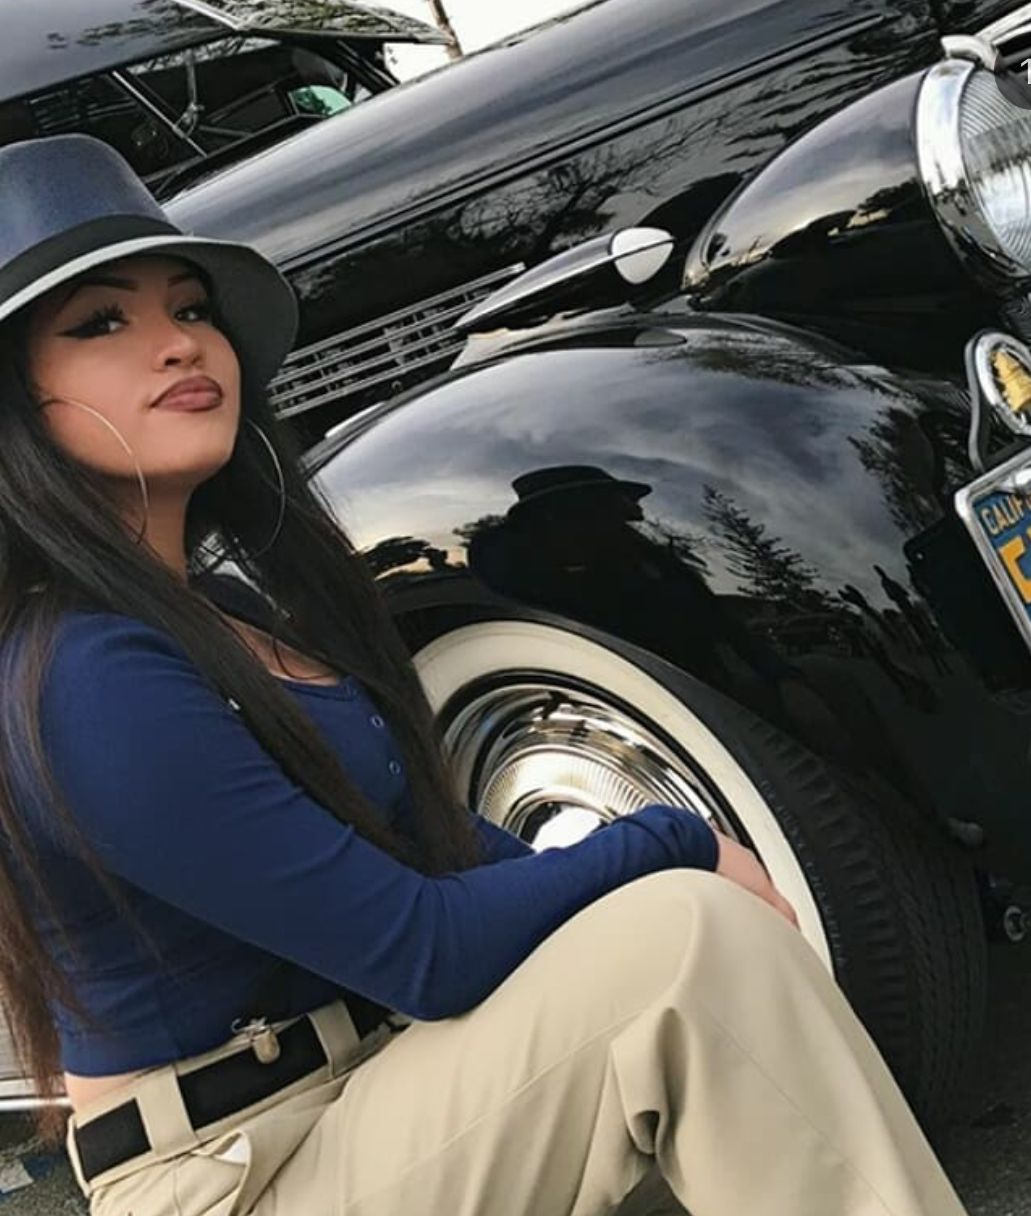 Pin on cholas - Chicano pride images ...